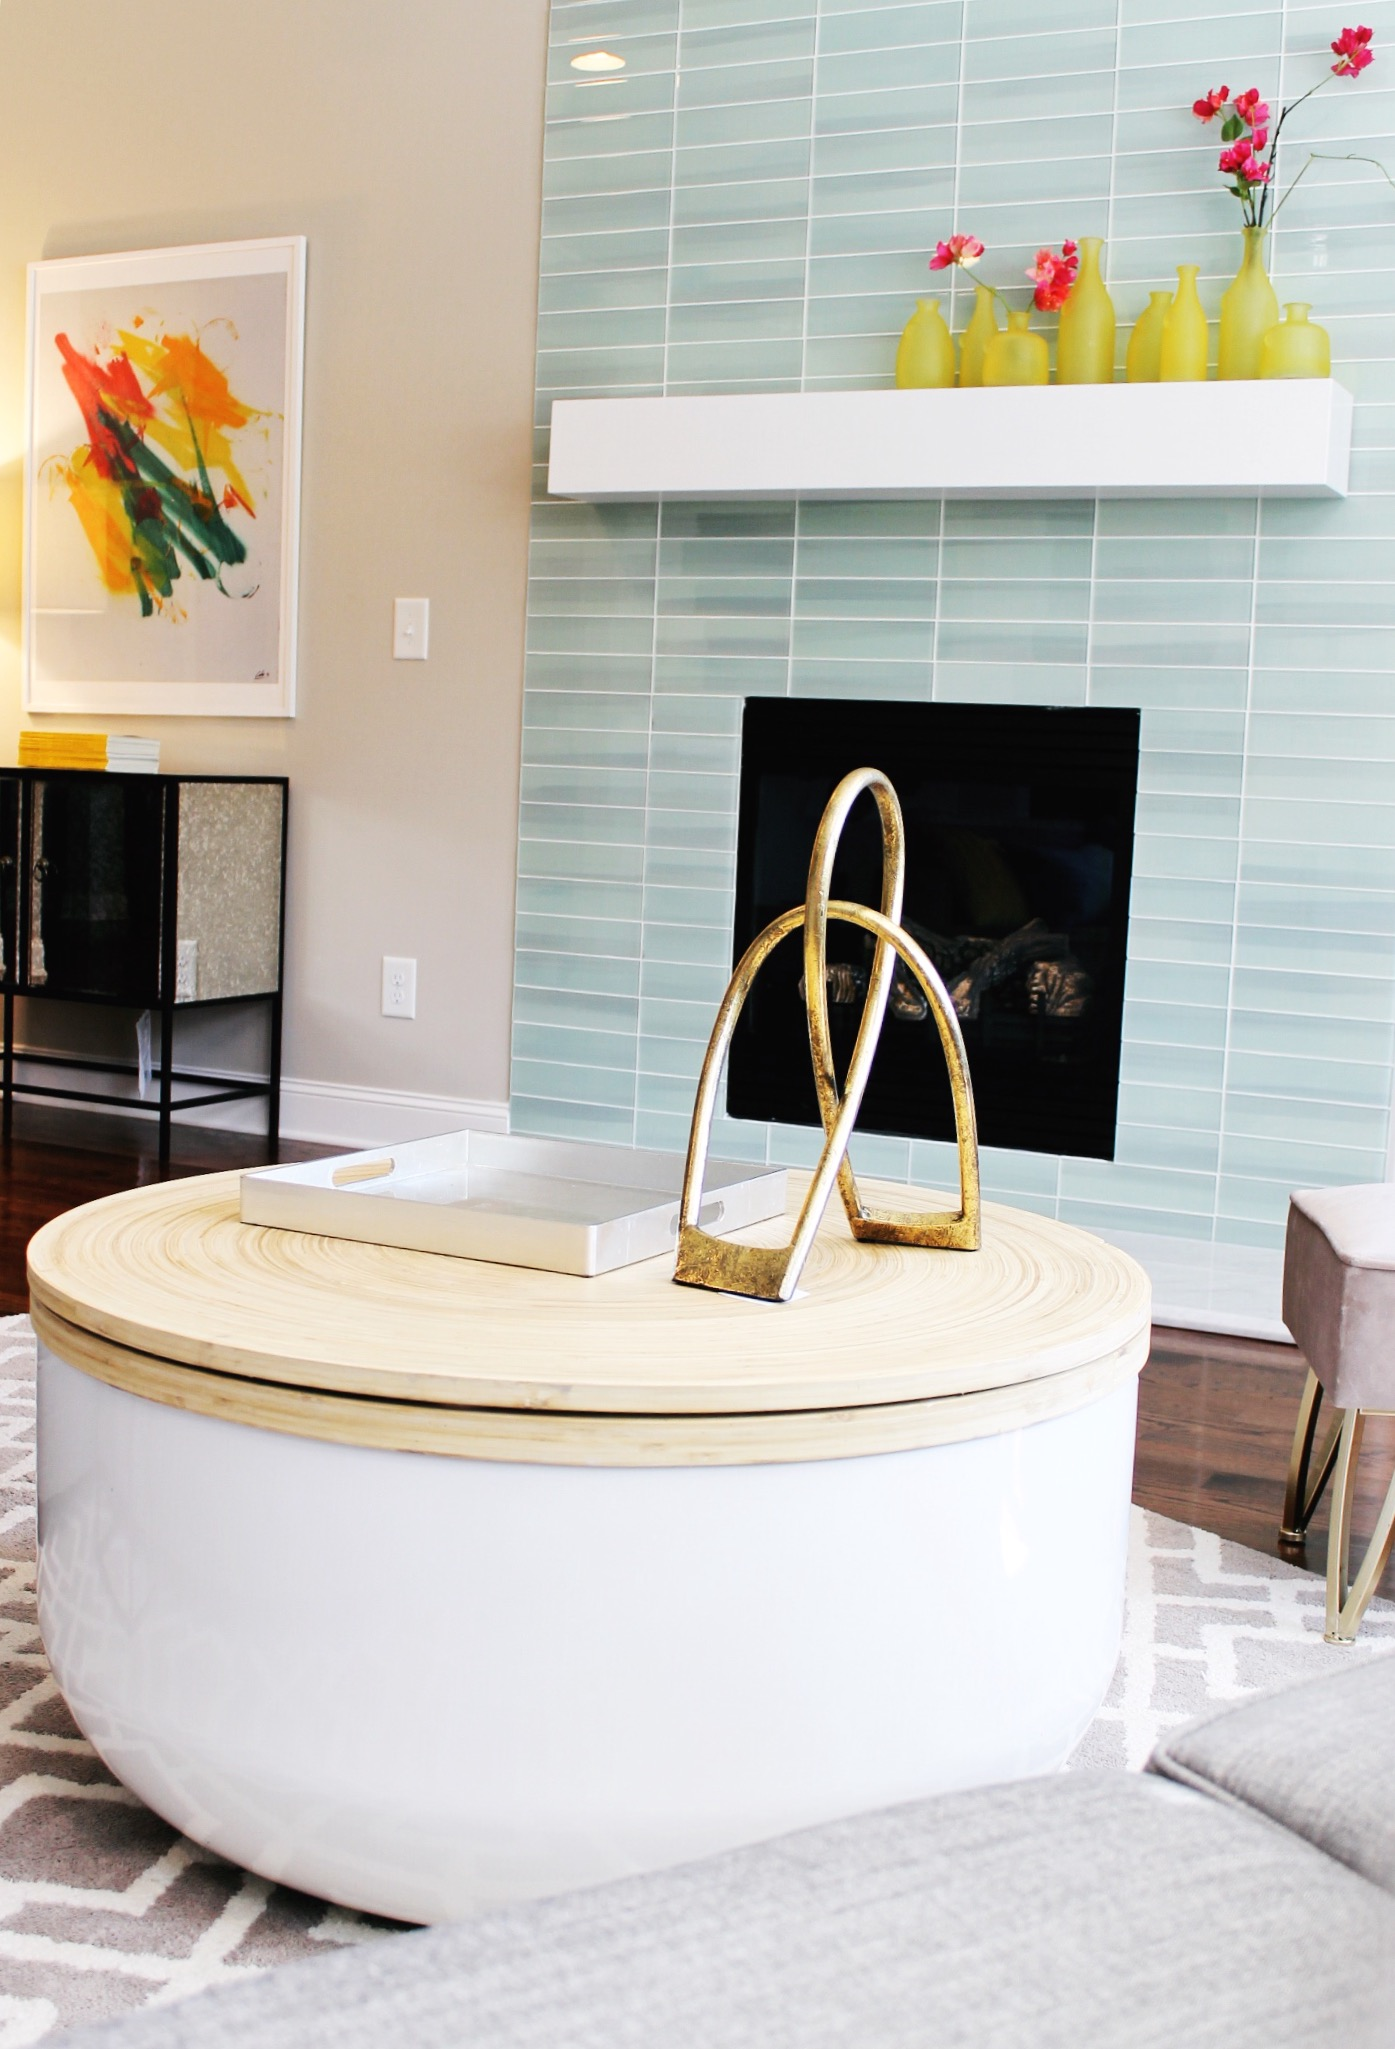 Glass Tiled Fireplace takes Center Stage